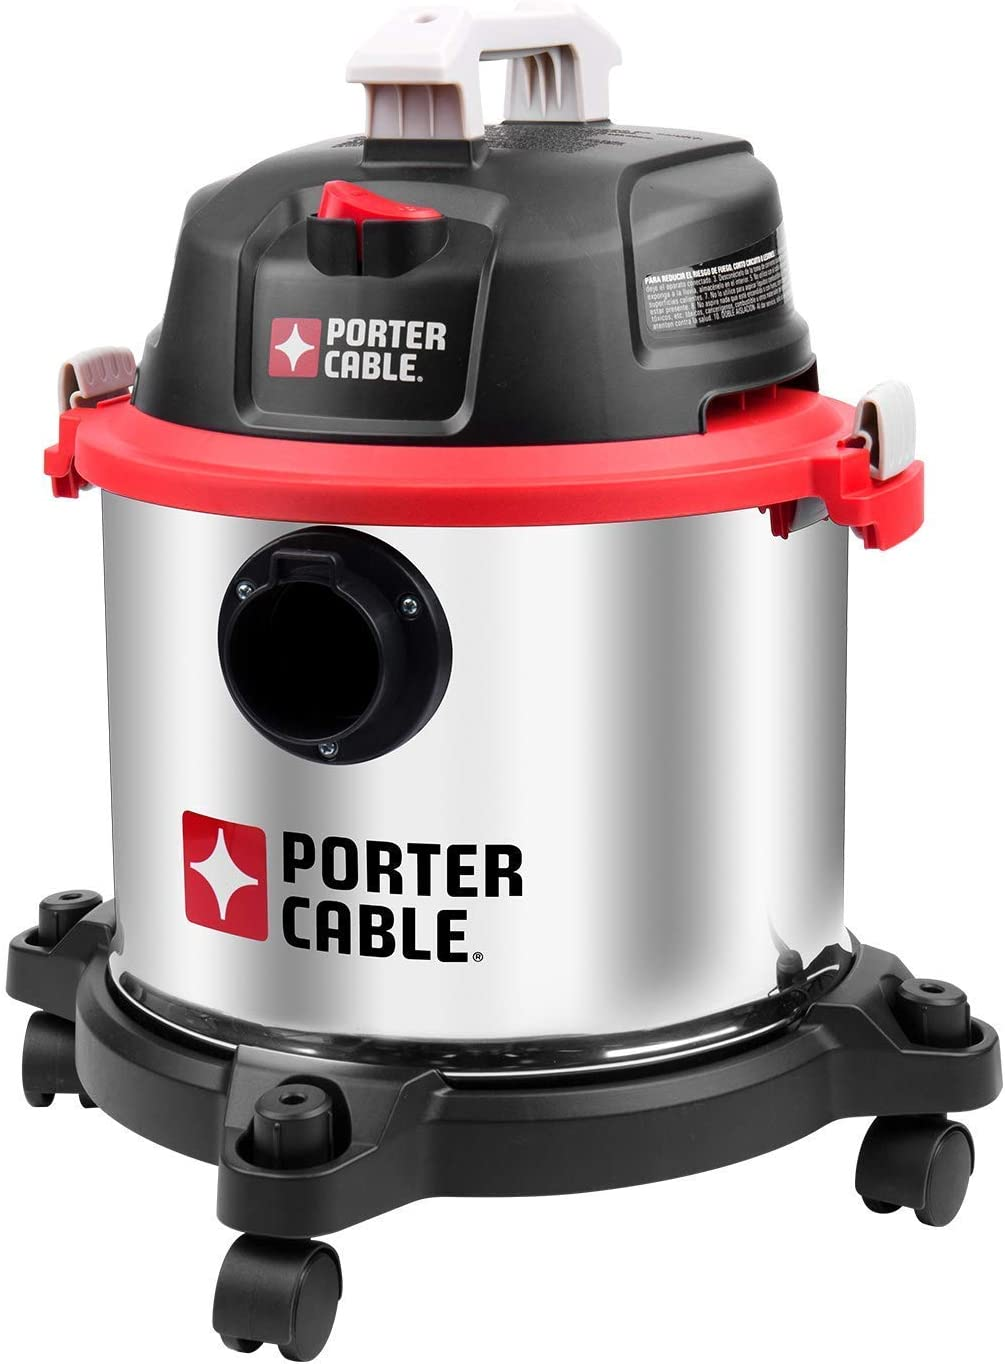 Porter-Cable 5 Gallon Wet Dry Vacuum, 4 Peak HP Stainless Steel 3 in 1 Shop Vac Blower with Powerful Suction, Multifunctional Shop Vacuum W 4 Horsepower Motor for Job Site,Garage,Basement,Workshop